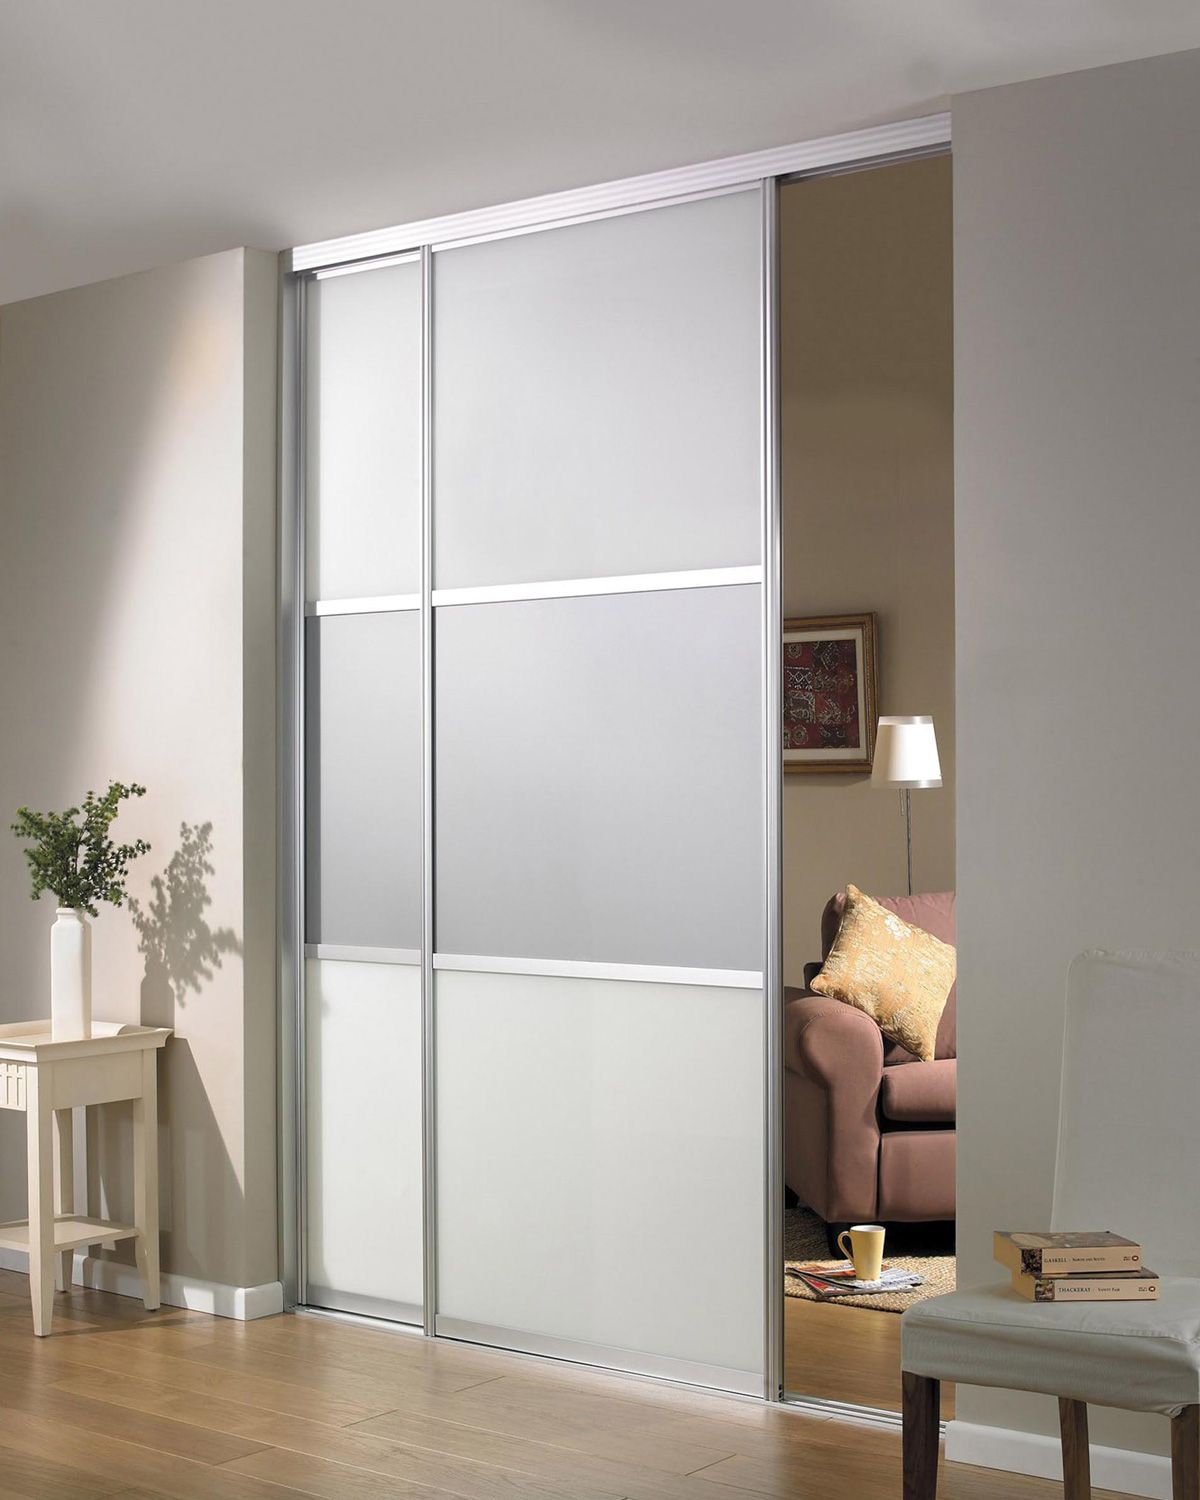 beautiful idea shoji room divider. Beautiful Sliding Room Divider Design Idea in Gray with Two Panels and  Single Rail Installed